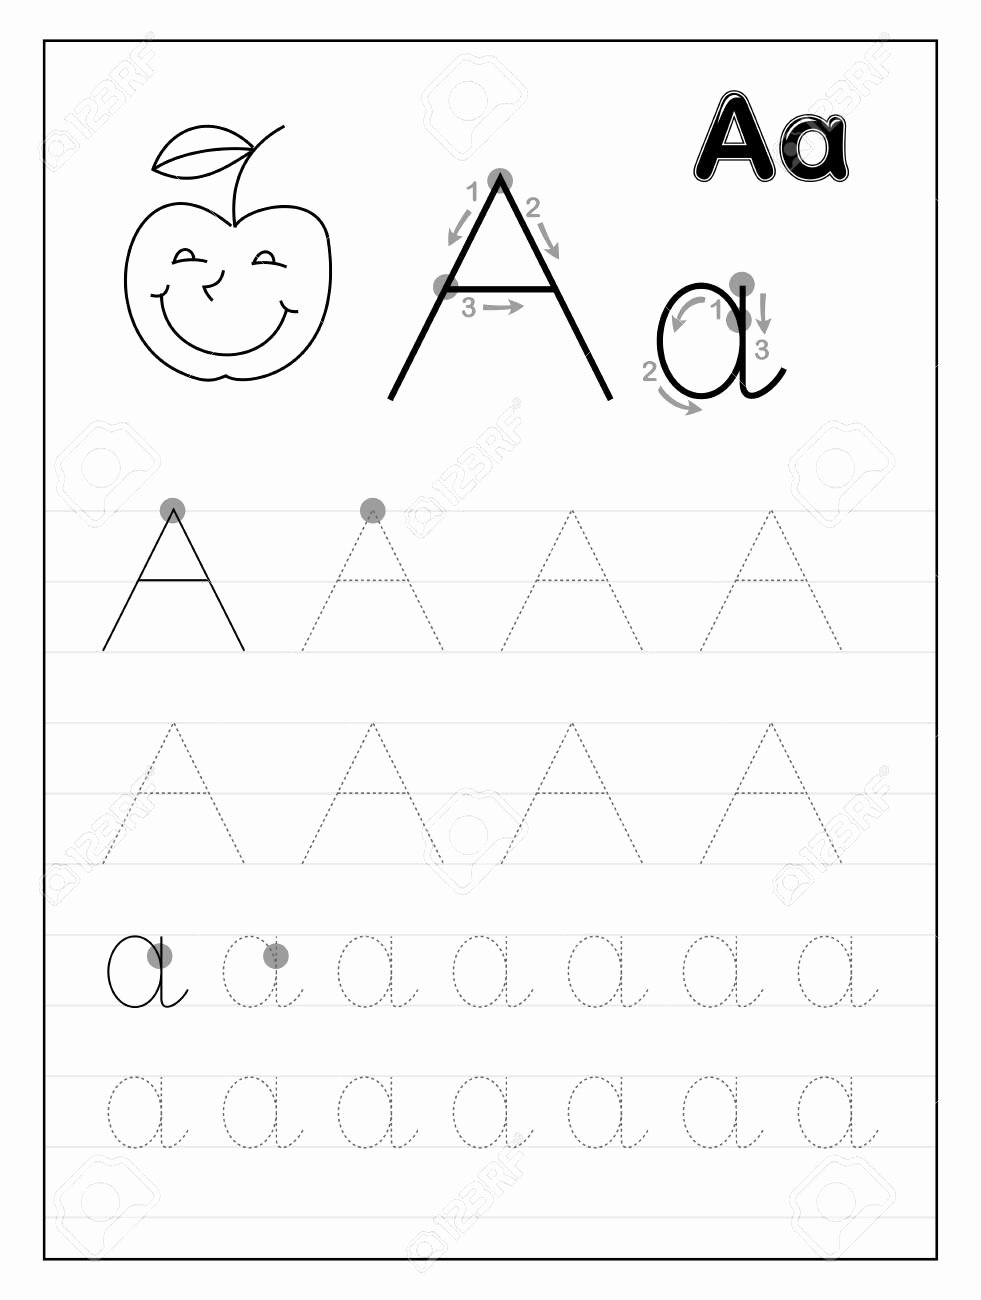 Worksheets for Preschoolers Free Printable Ideas Math Worksheet Math Worksheet Preschool Letter Worksheets